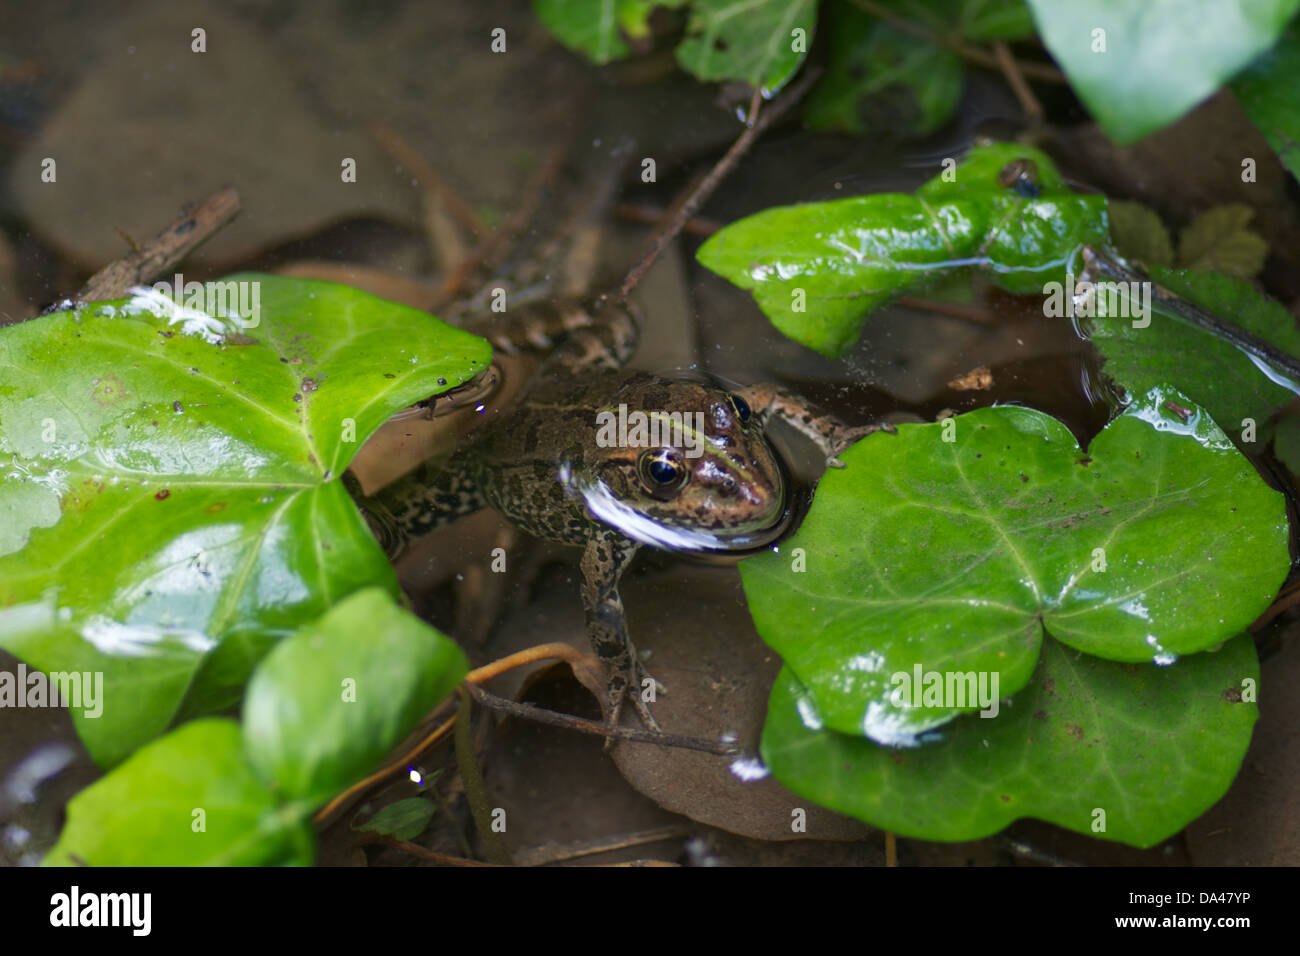 A Marsh Frog (Pelophylax ridibundus) at Krka National Park in Sibenik, Dalmatia, Croatia. - Stock Image